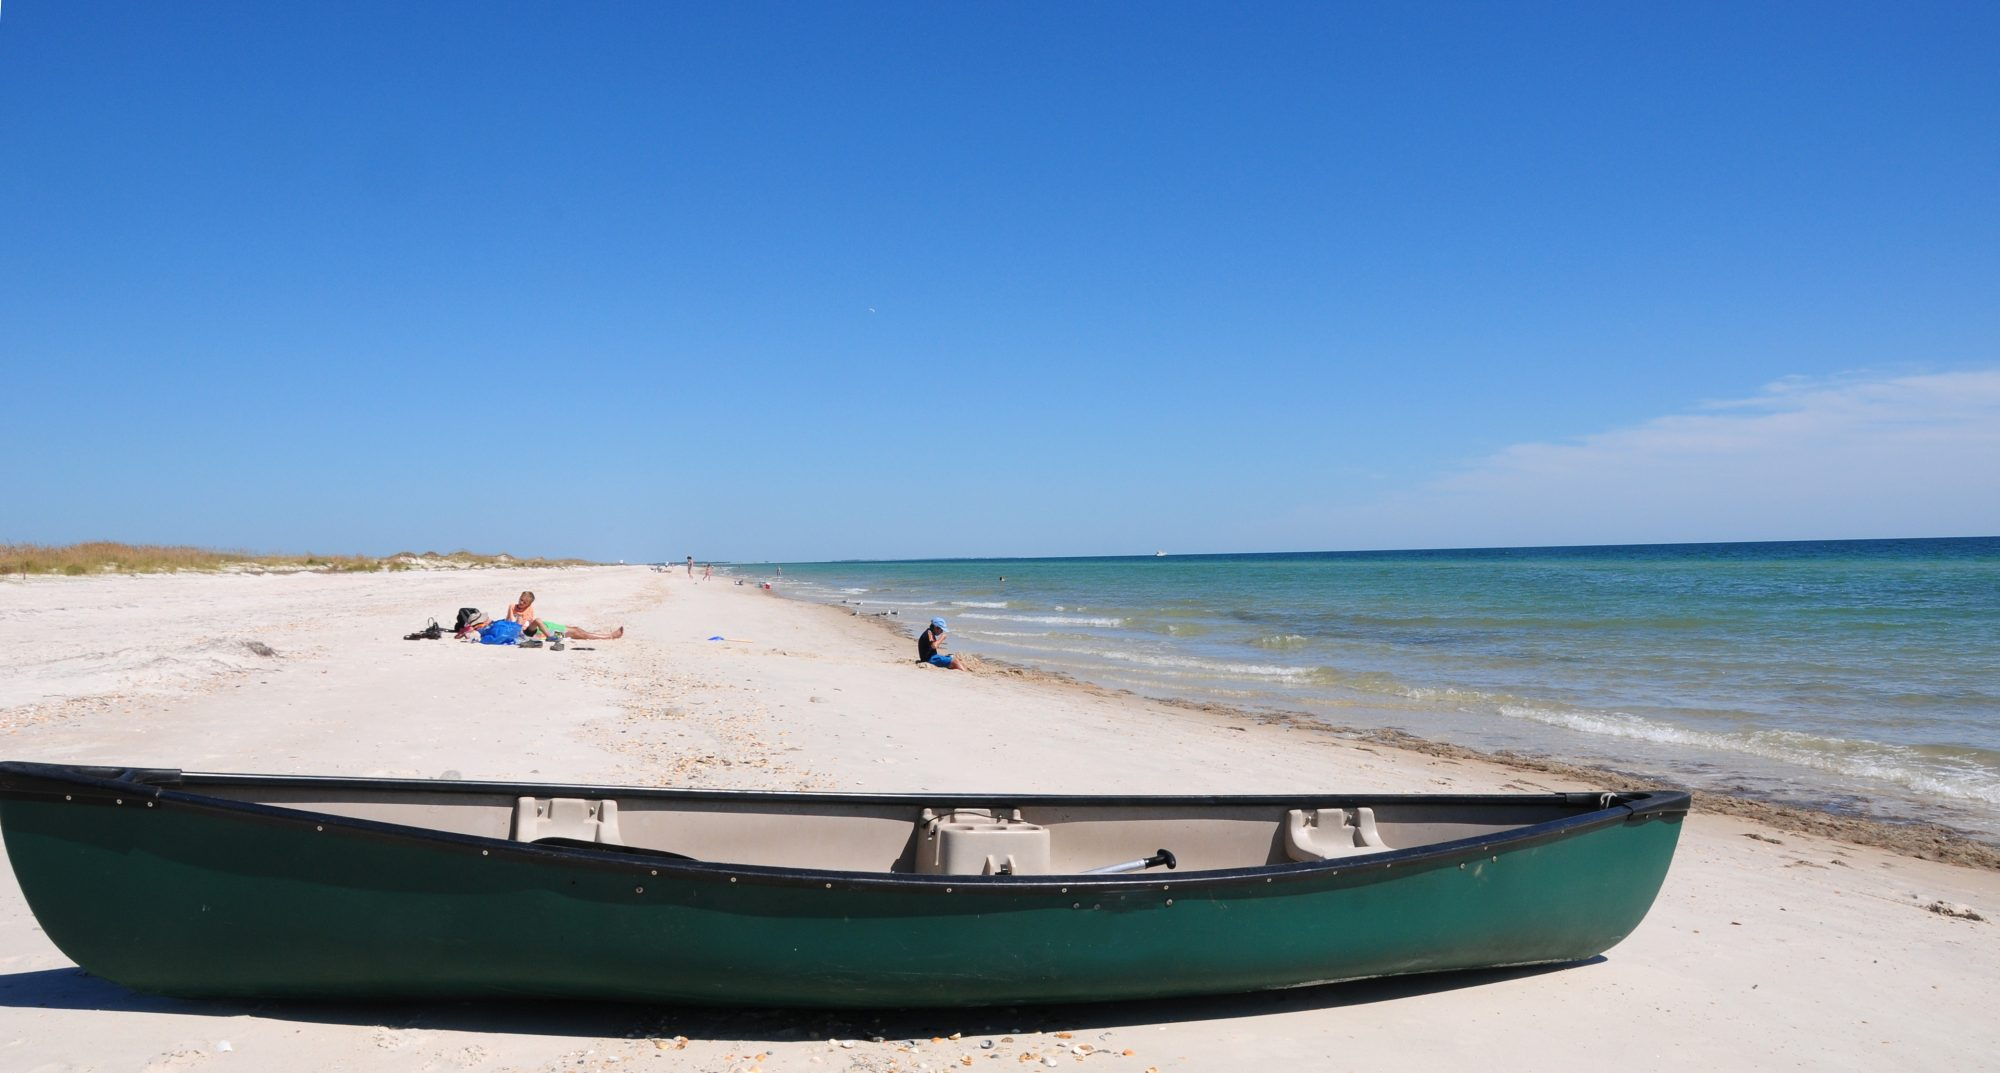 You don't have to give up beauty to find an out-of-the-way beach. St. Joseph Peninsula has one of the prettiest shorelines in the nation, but its sugar-sand dunes are practically empty compared with Panama City, Destin, and other busy Sunshine State locales. Let's just keep that our secret.